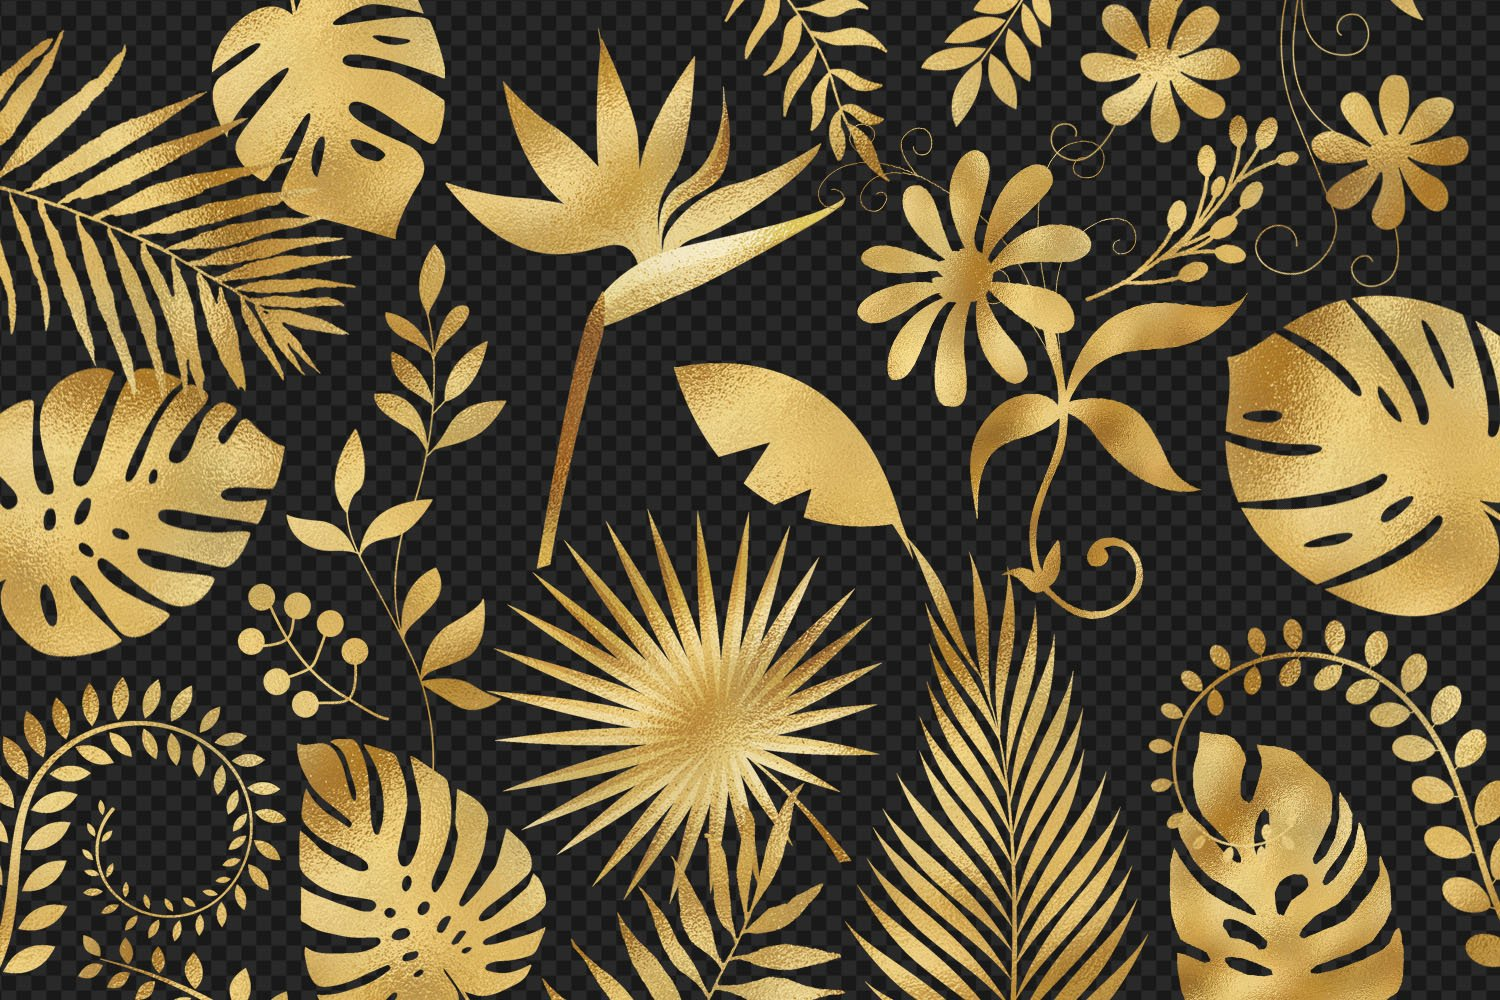 Gold Foil Tropical Leaves Clip Art example image 3